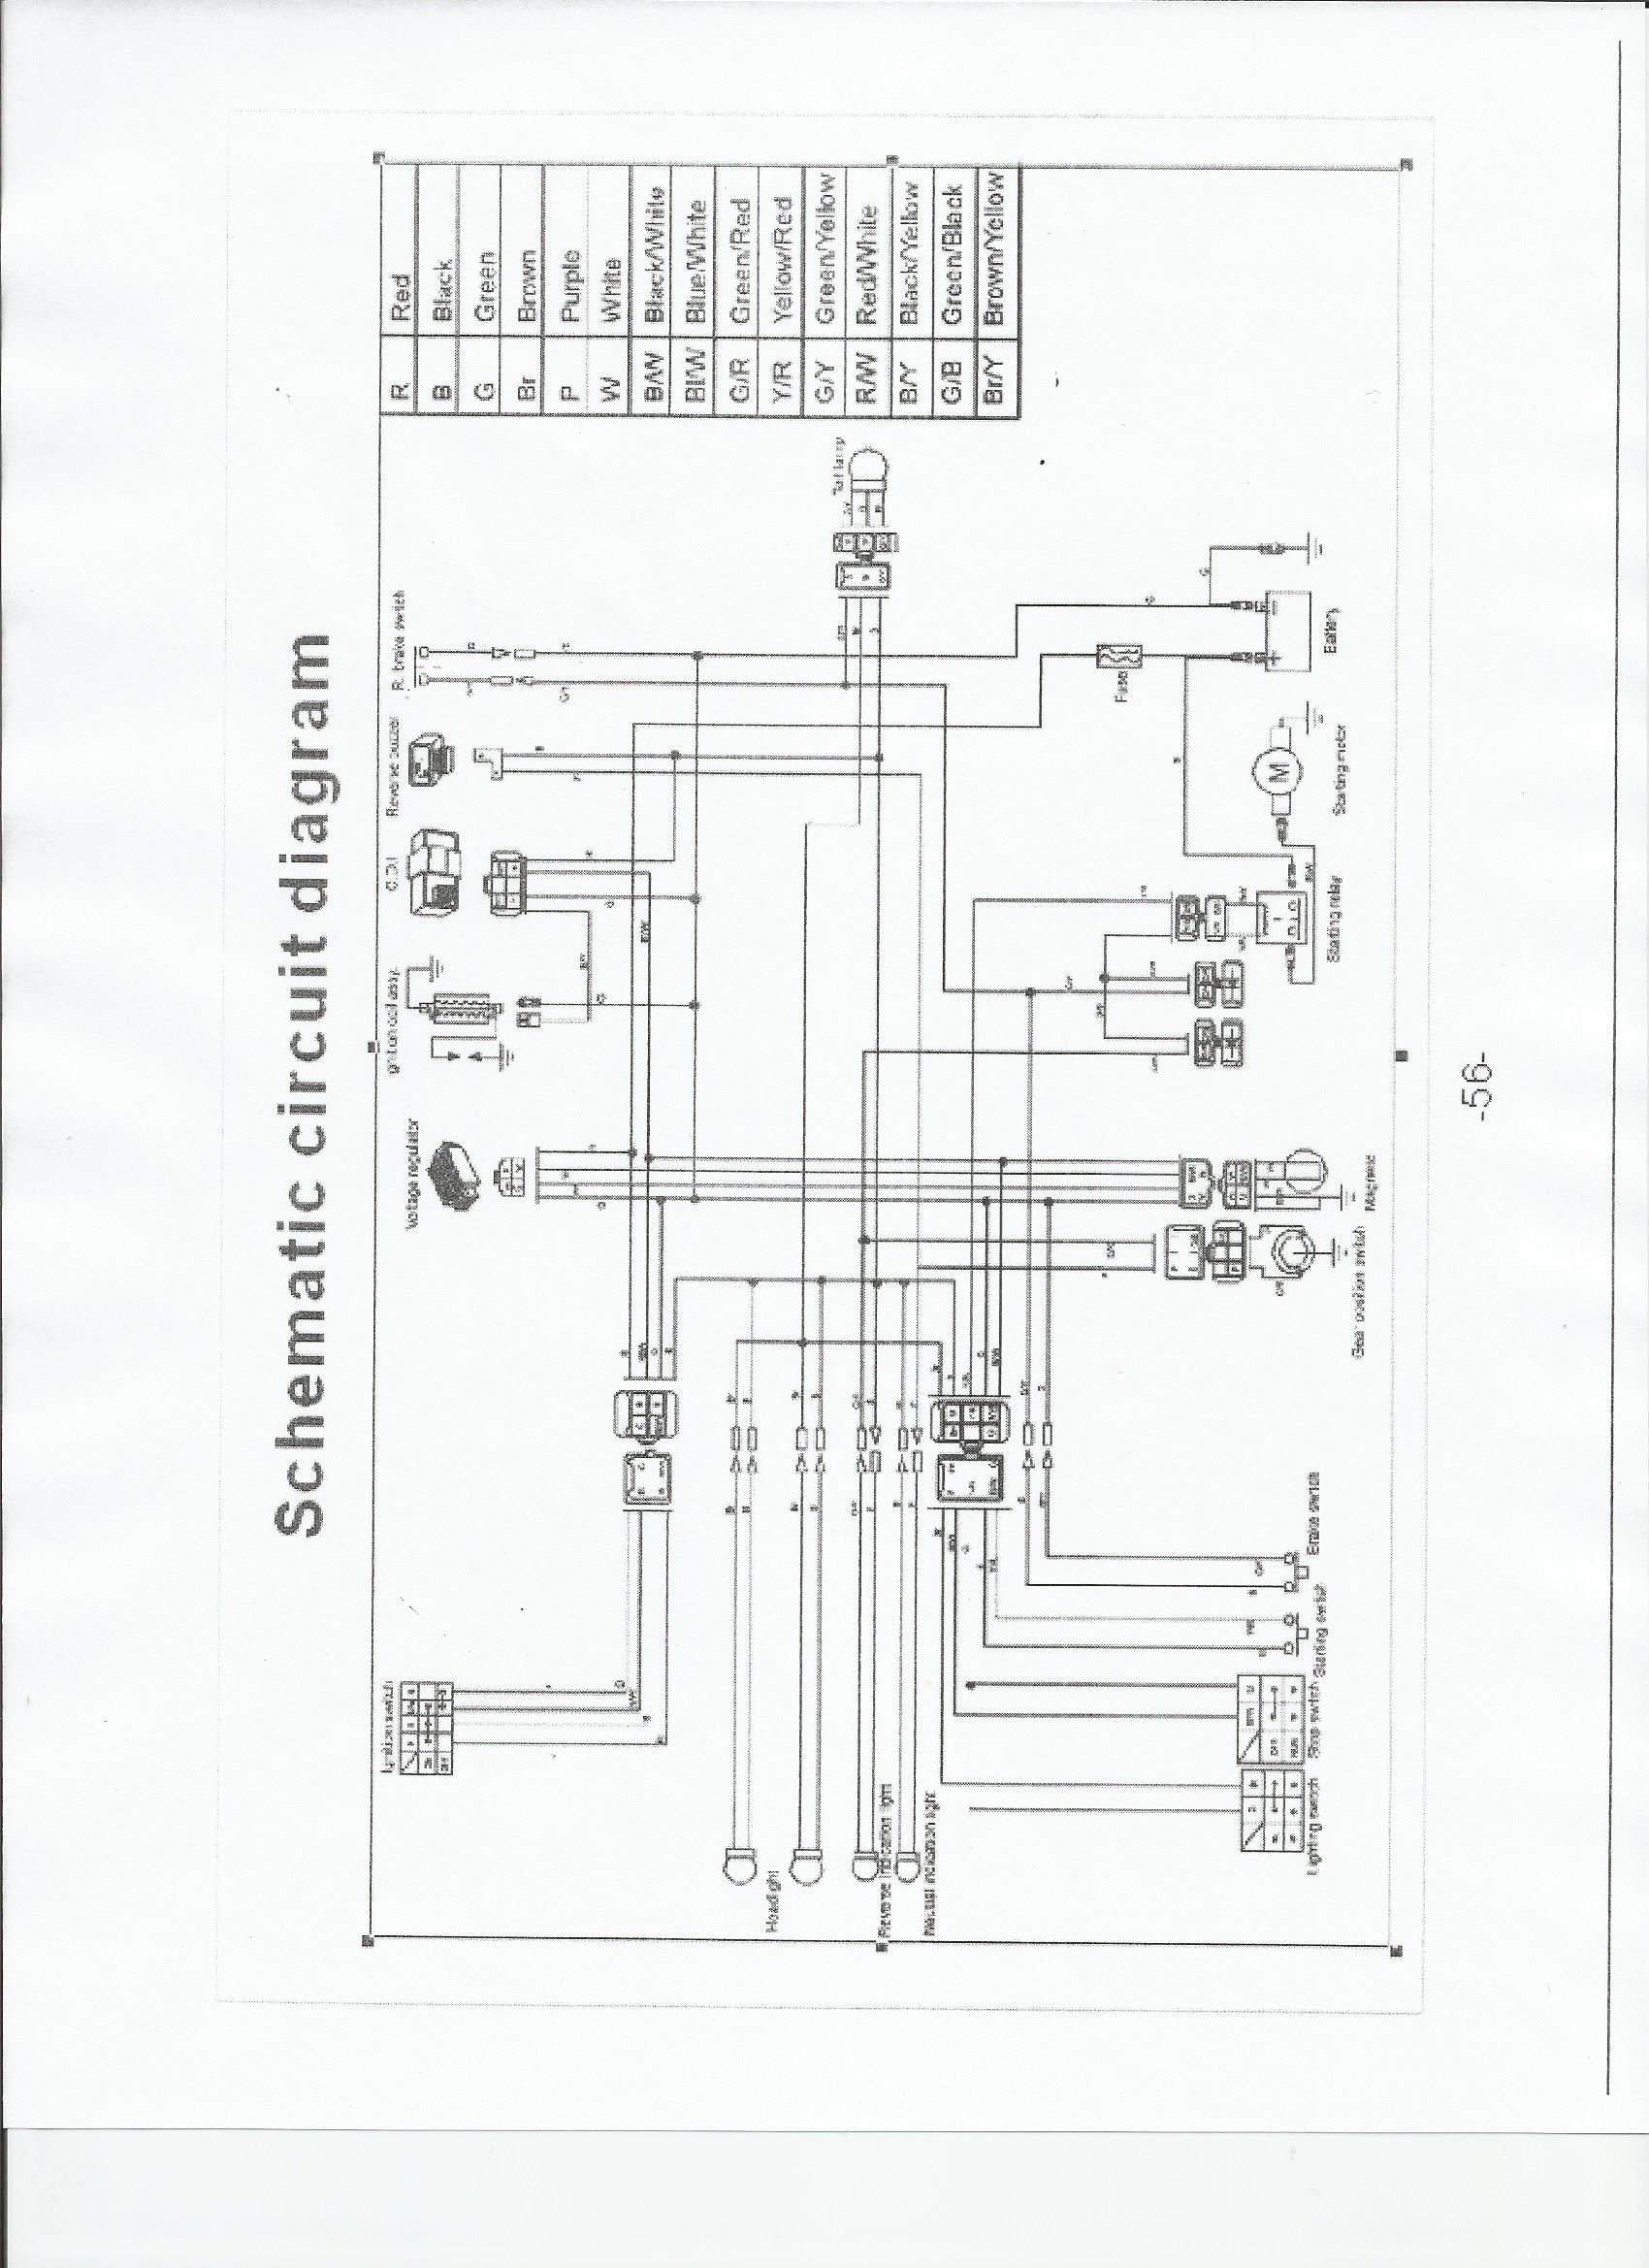 tao tao wiring schematic taotao ata 110h1 wiring diagram chinese go kart wiring diagram  at mifinder.co